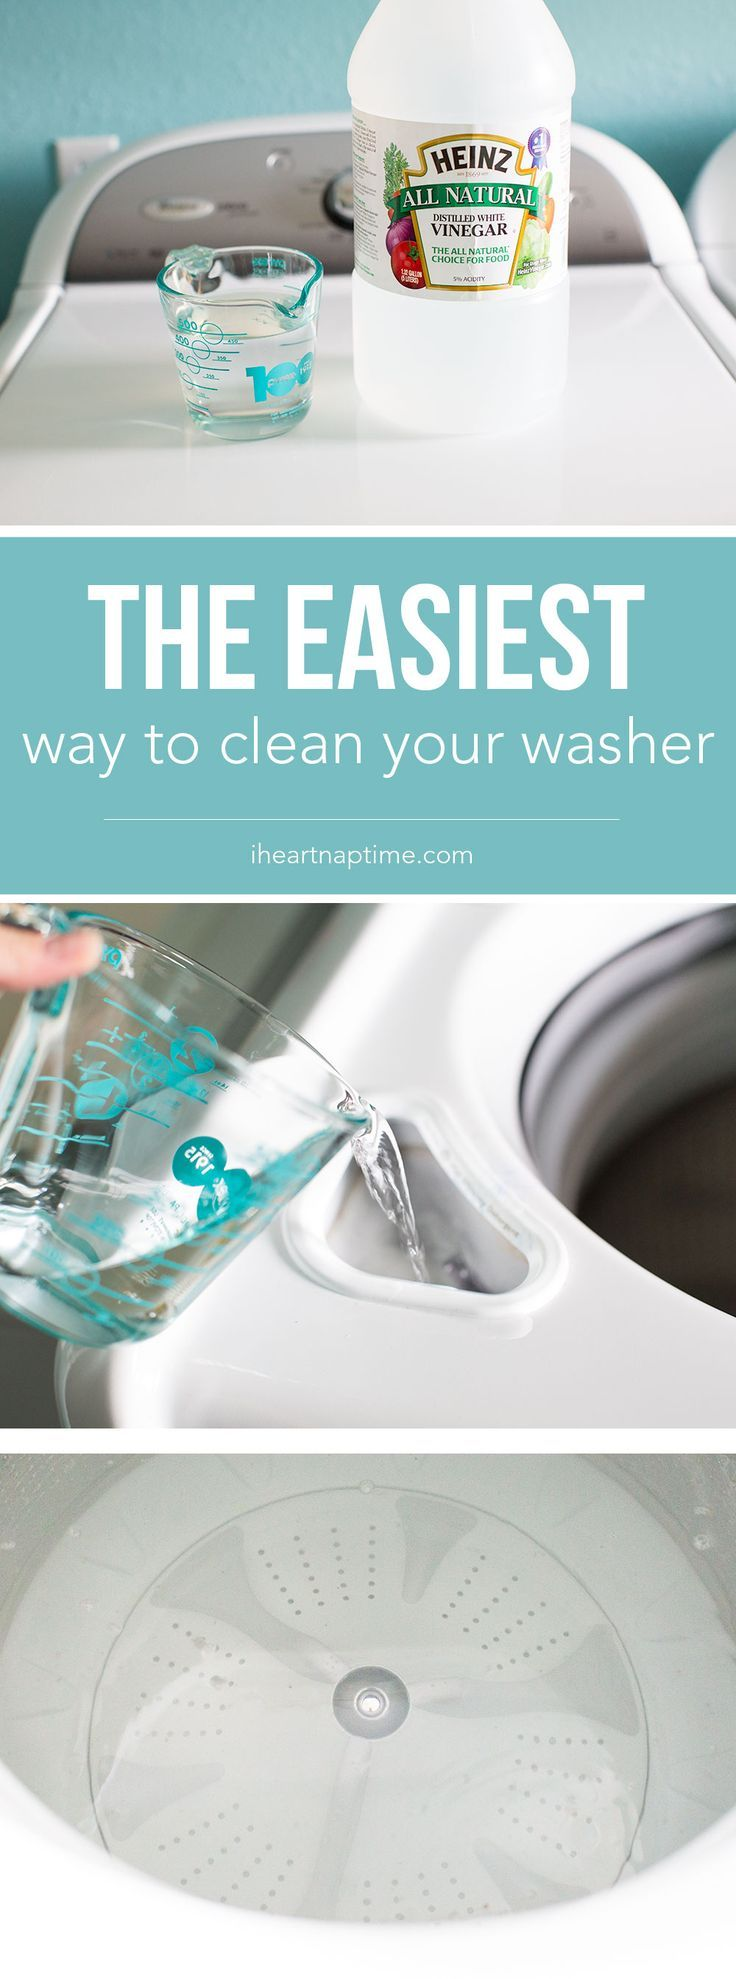 769 best Cleaning Tips images on Pinterest | Cleaning, Cleaning tips ...